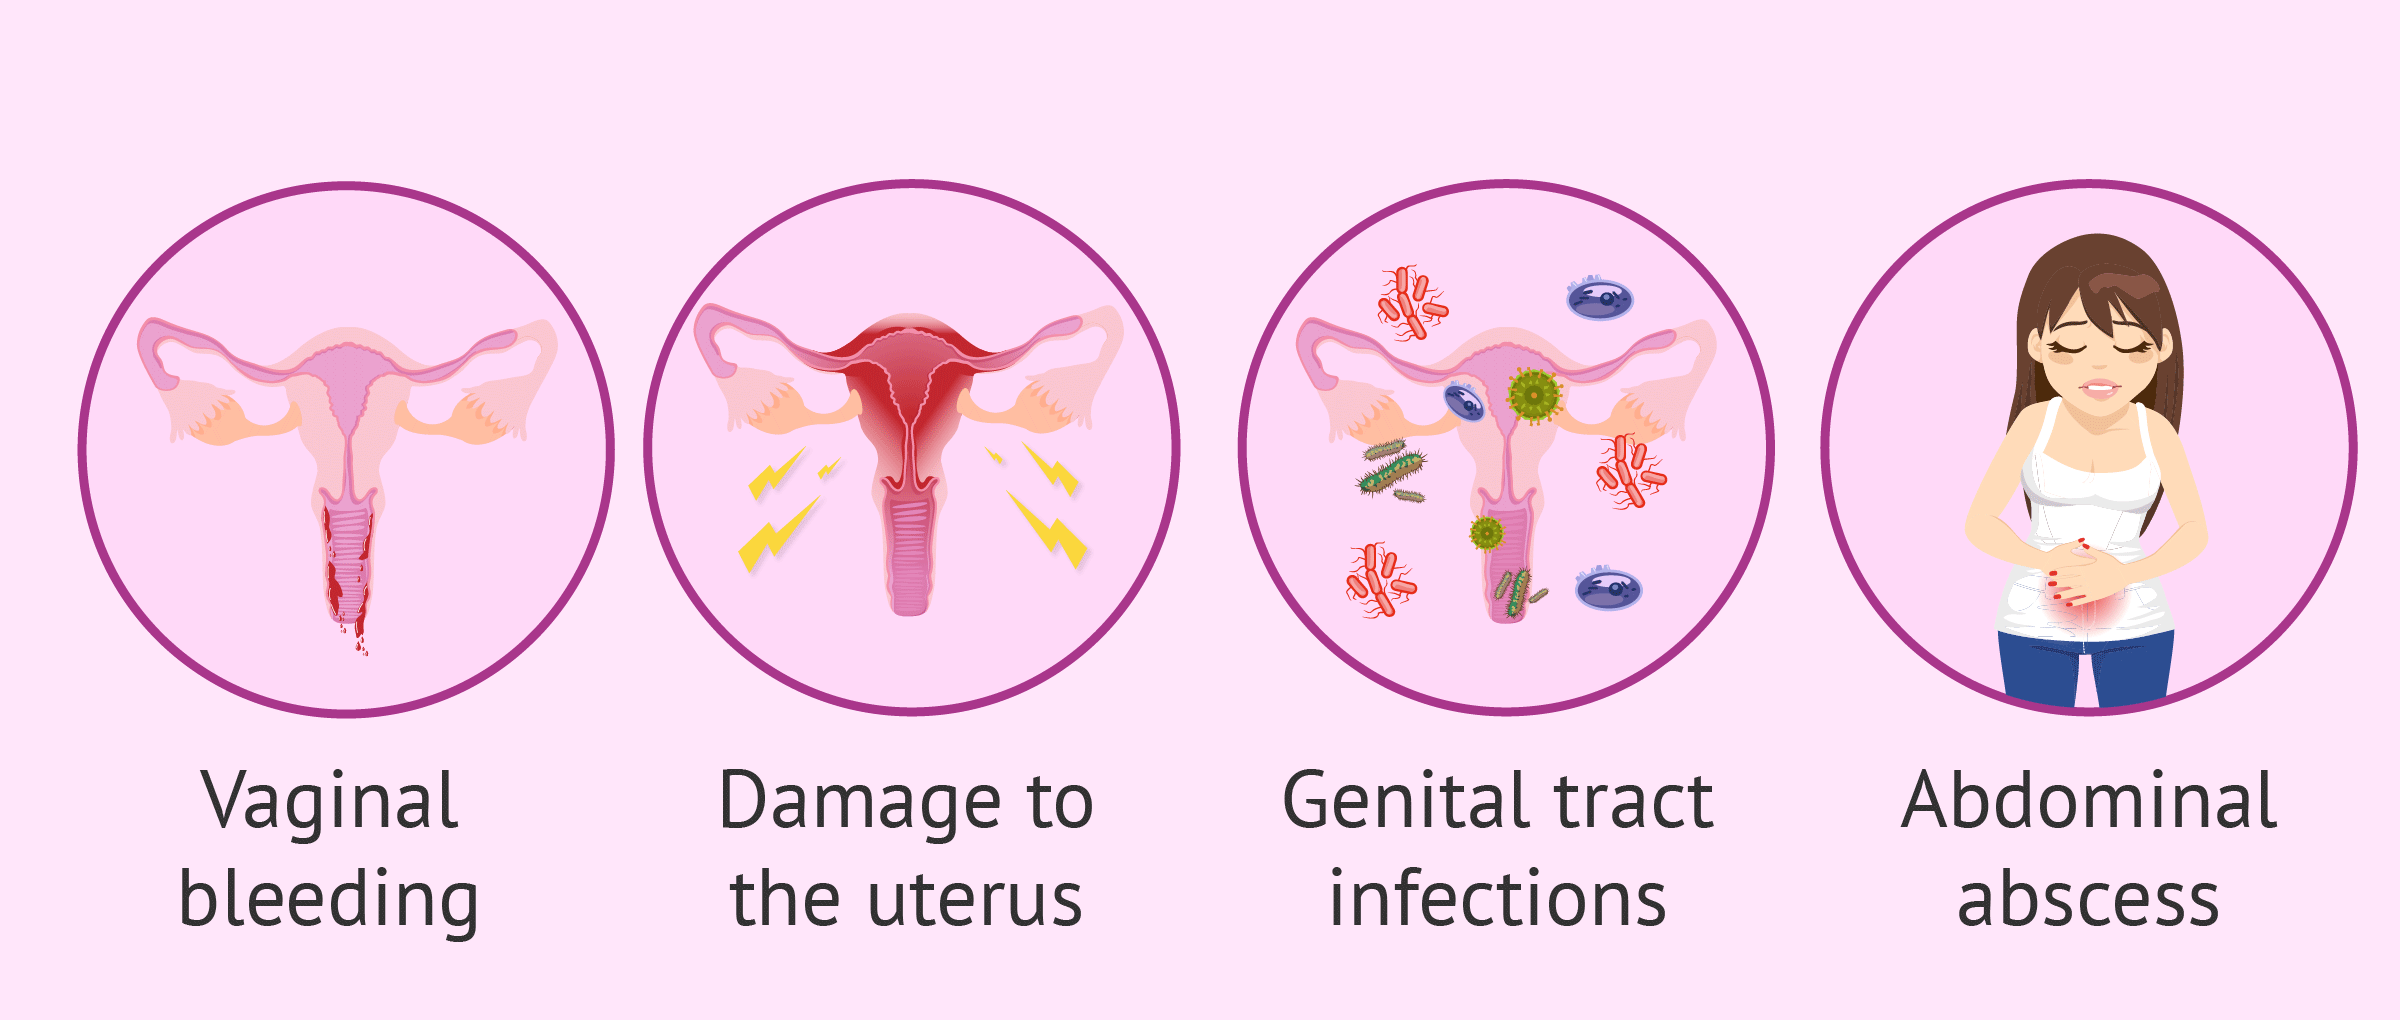 Abortion risks and side effects